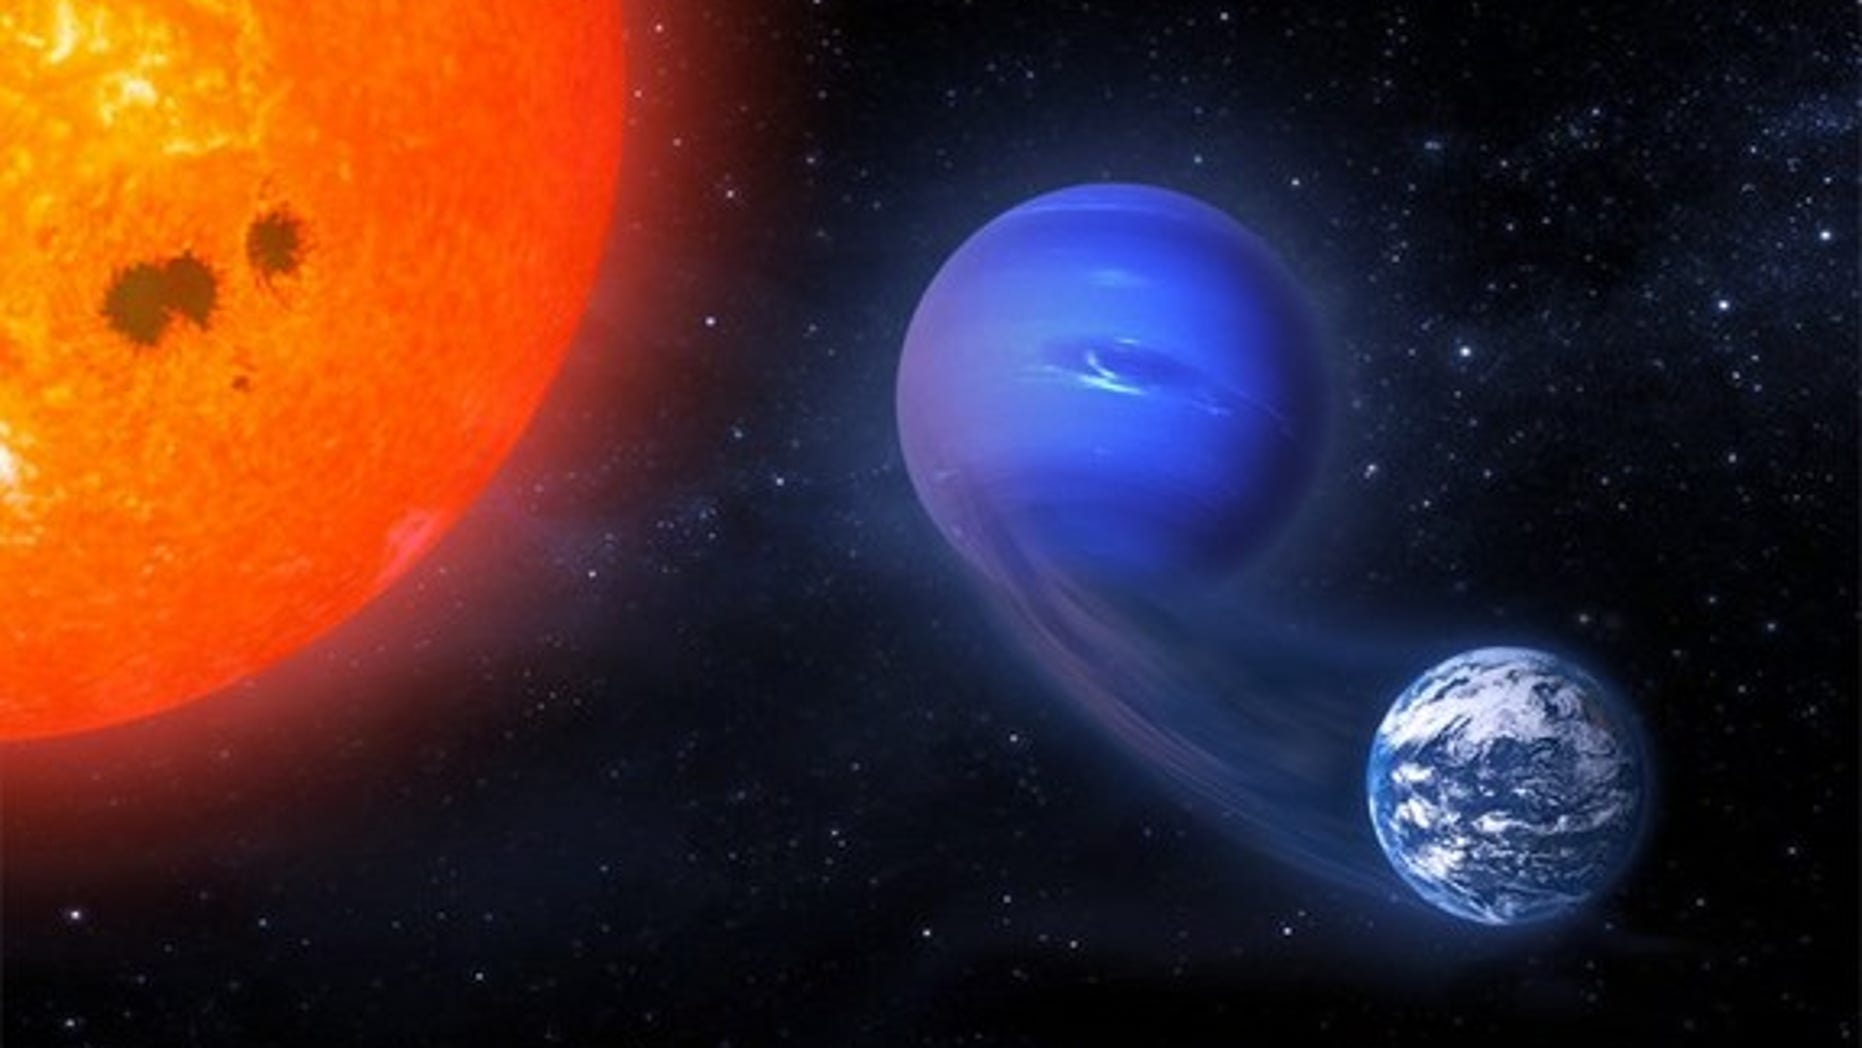 """This artist's illustration depicts the transformation of a """"mini-Neptune"""" exoplanet, orbiting a red dwarf star, into a potentially habitable rocky world."""